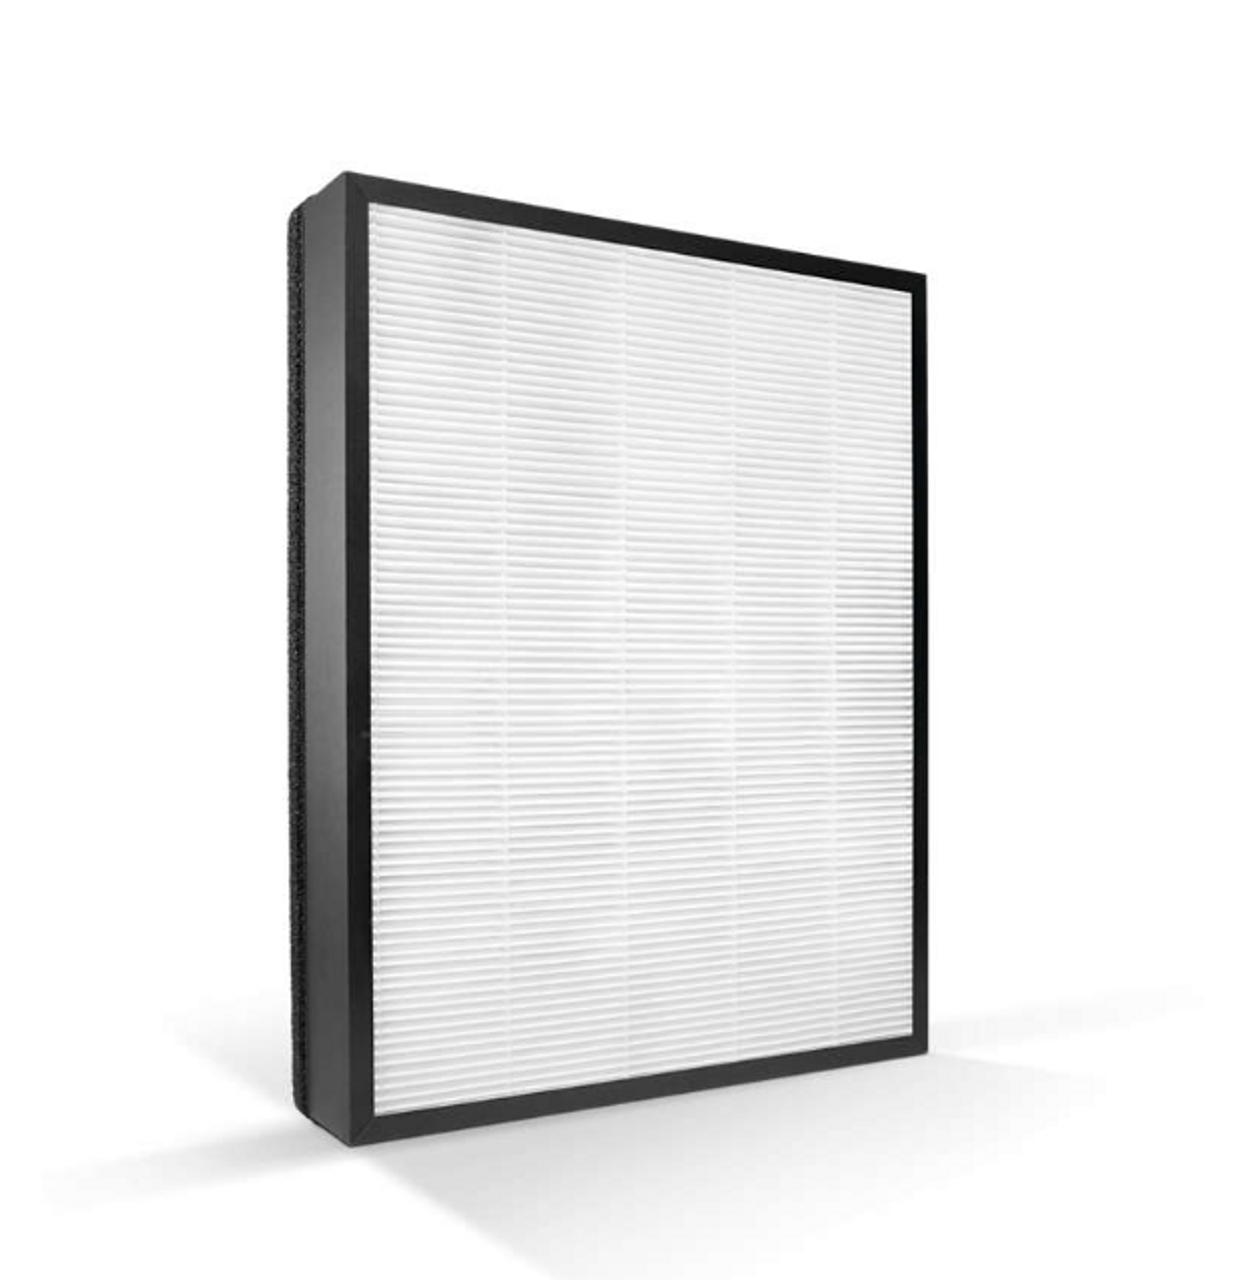 Philips FY3433/20 NanoProtect HEPA Replacement Air Purifier Filter Series 3